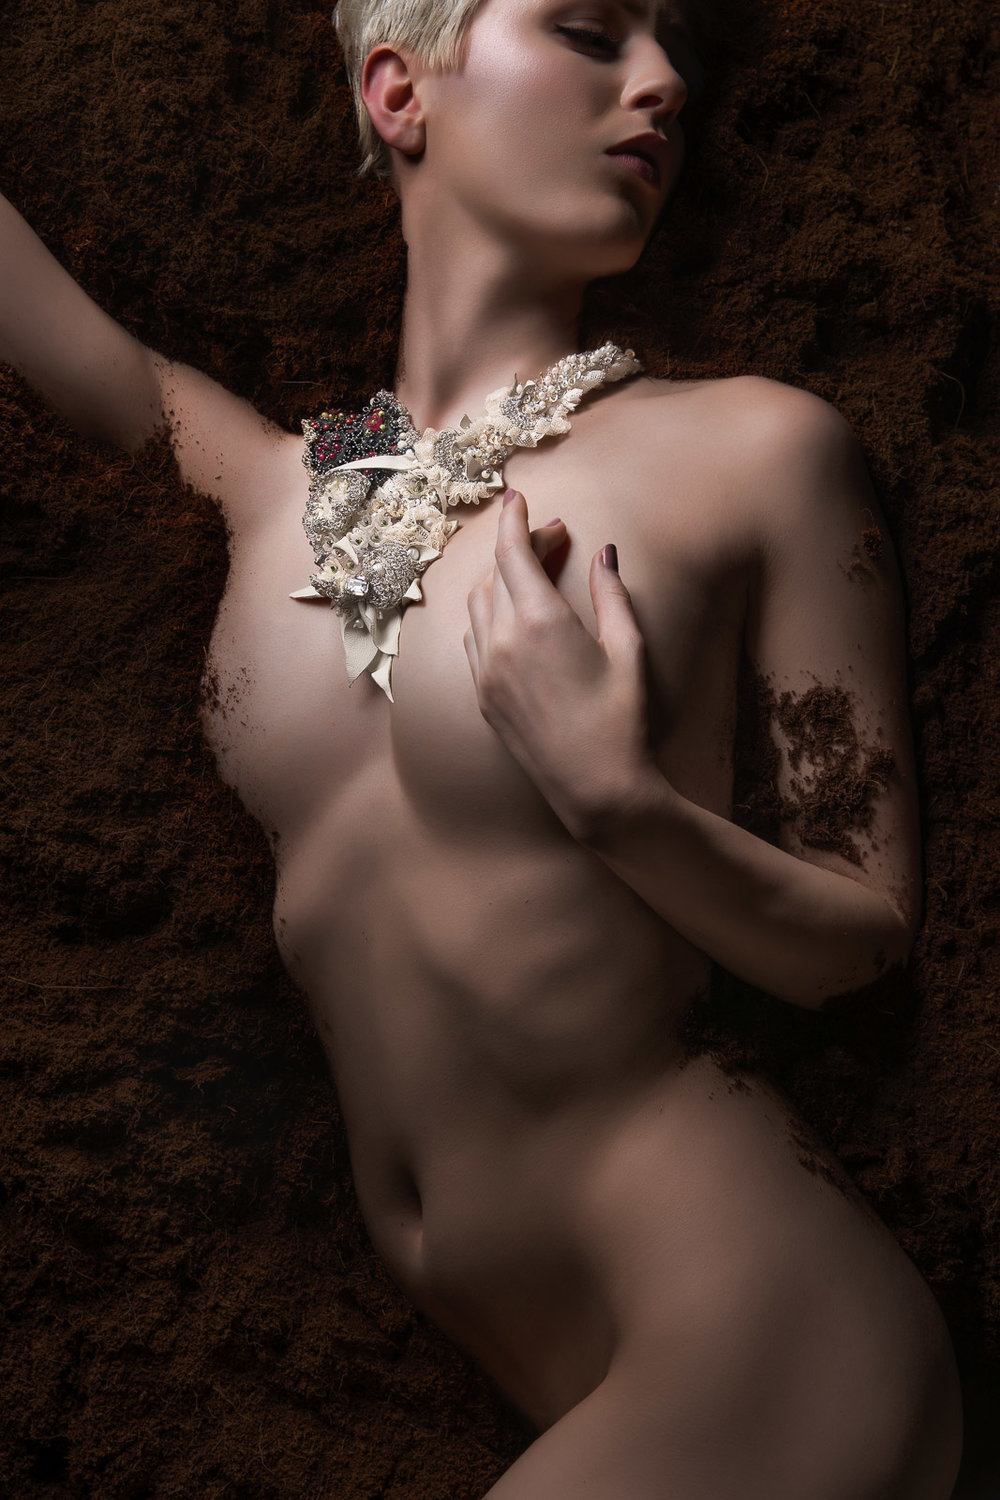 Kuoh Photography - Buried Treasure Beauty Concept - Necklace